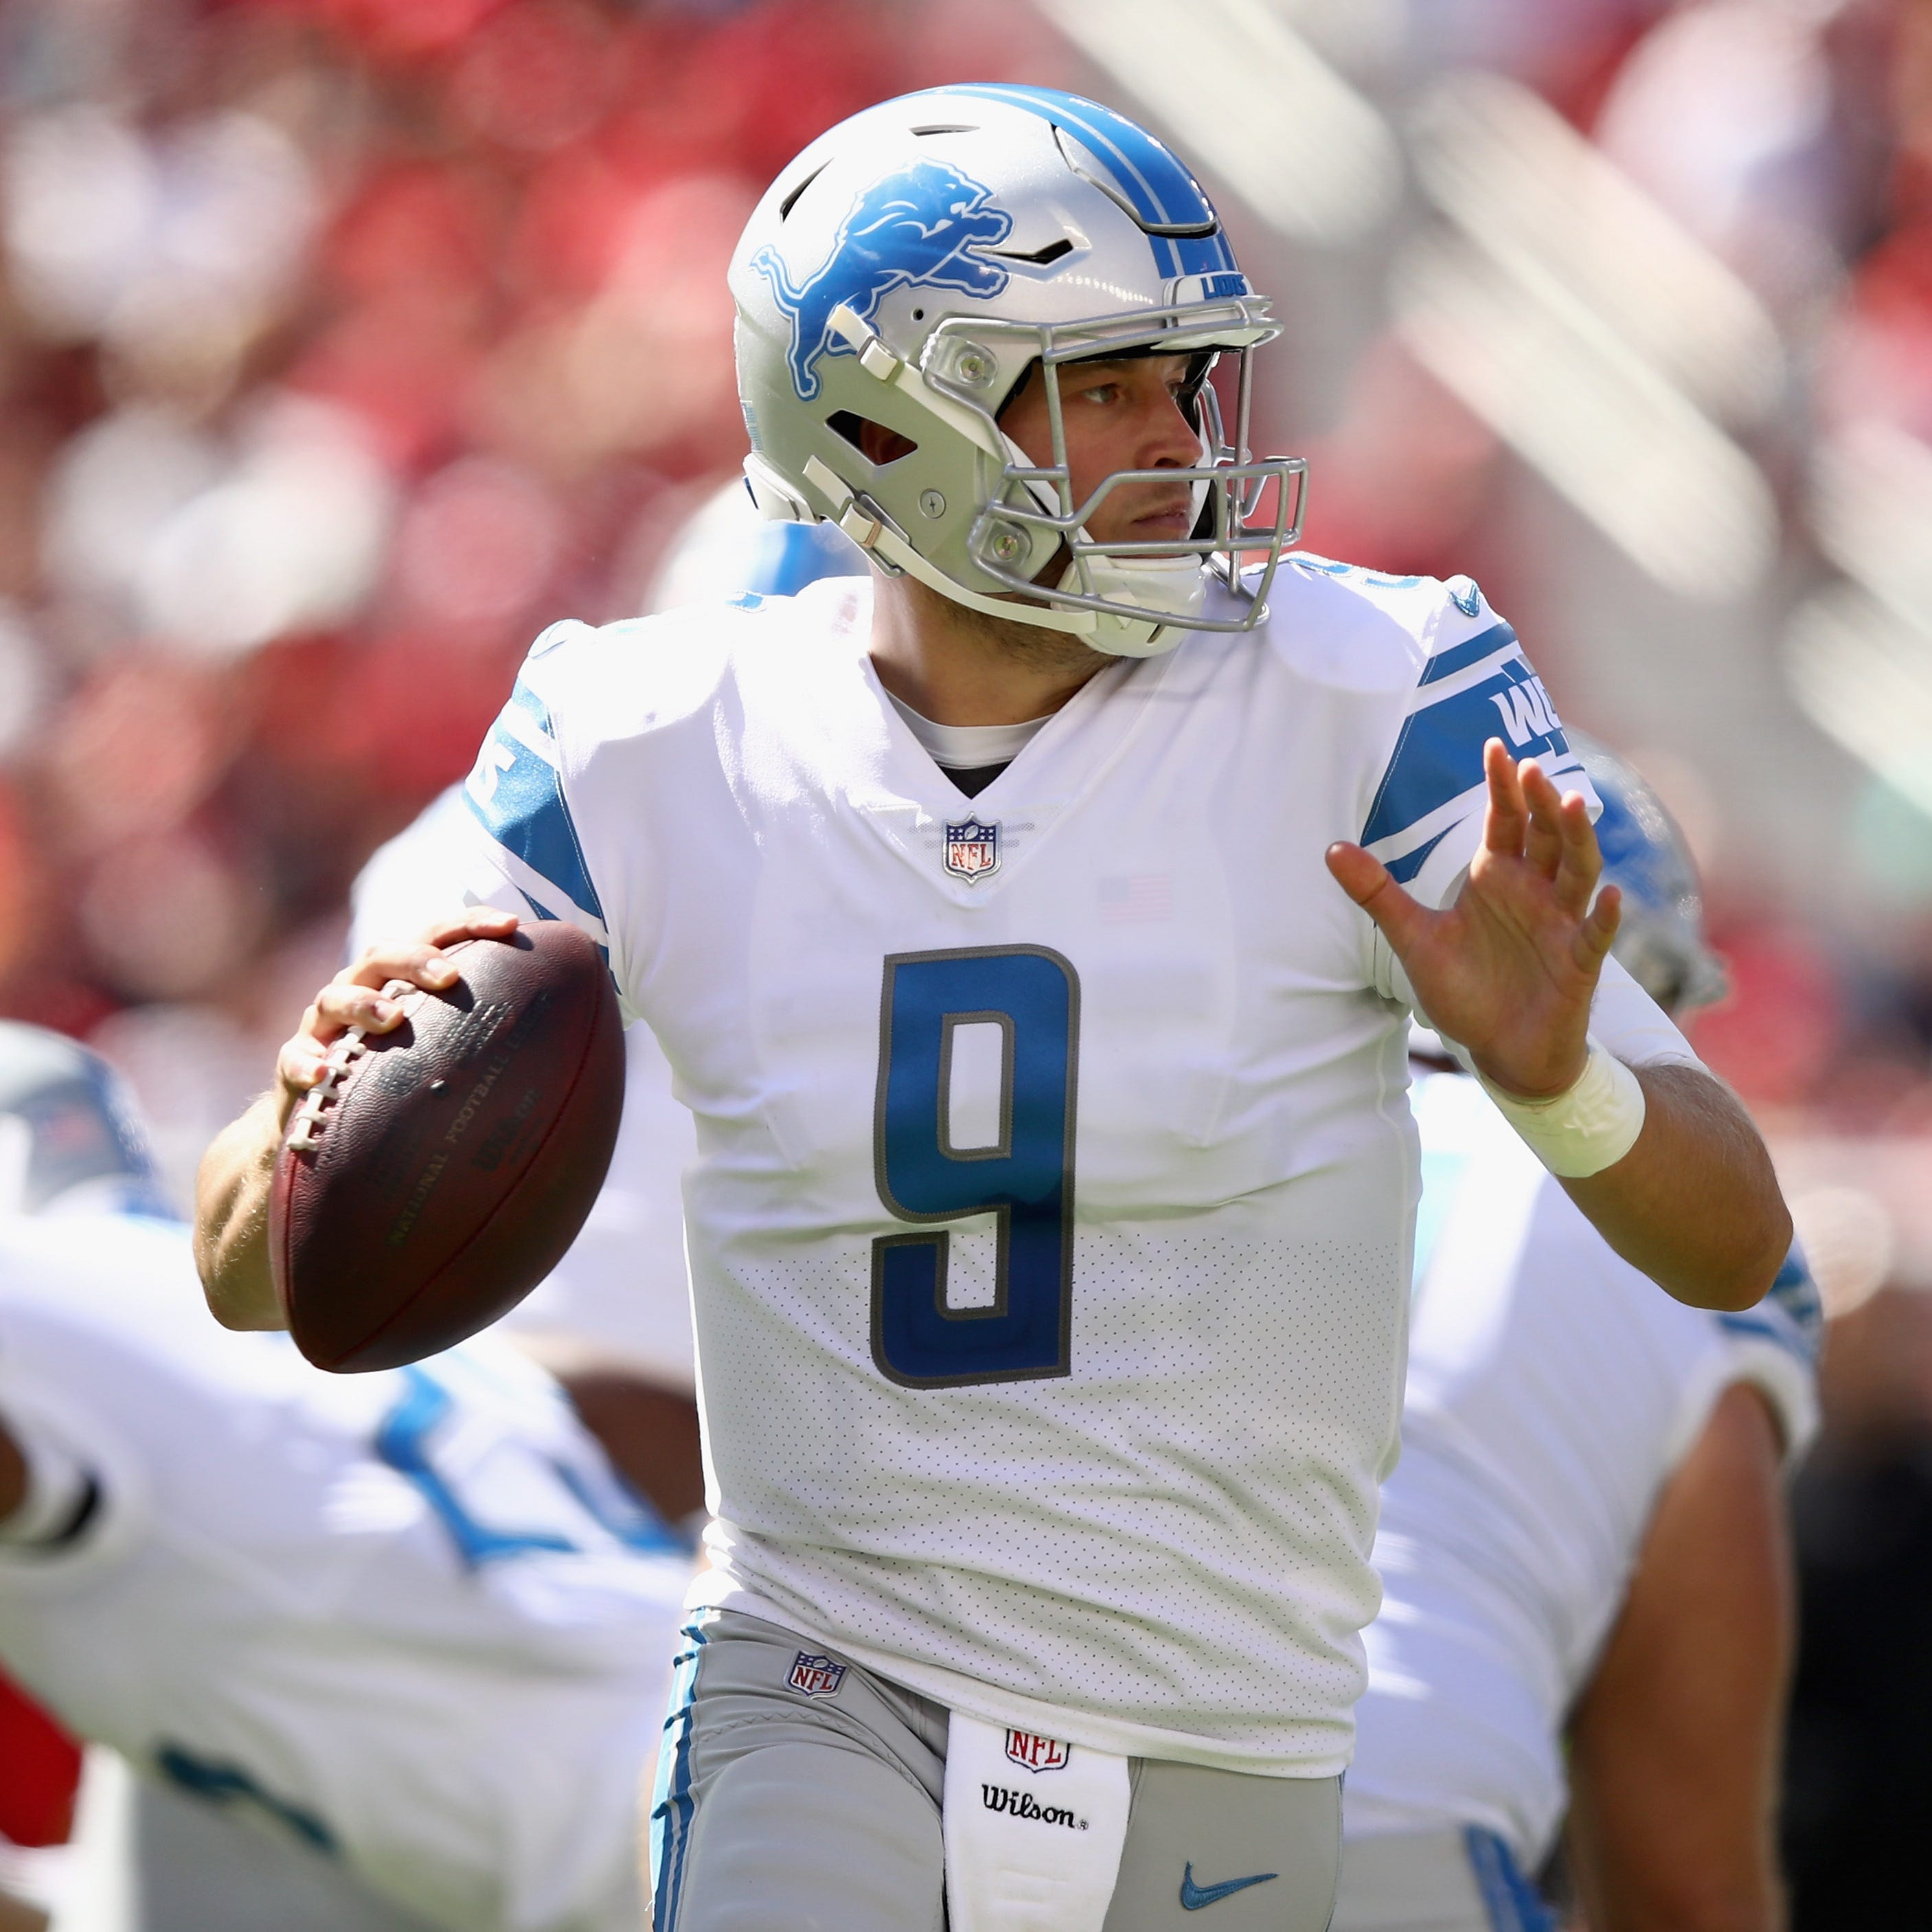 Daunting history of 0-3 looms large as Lions brace for Patriots